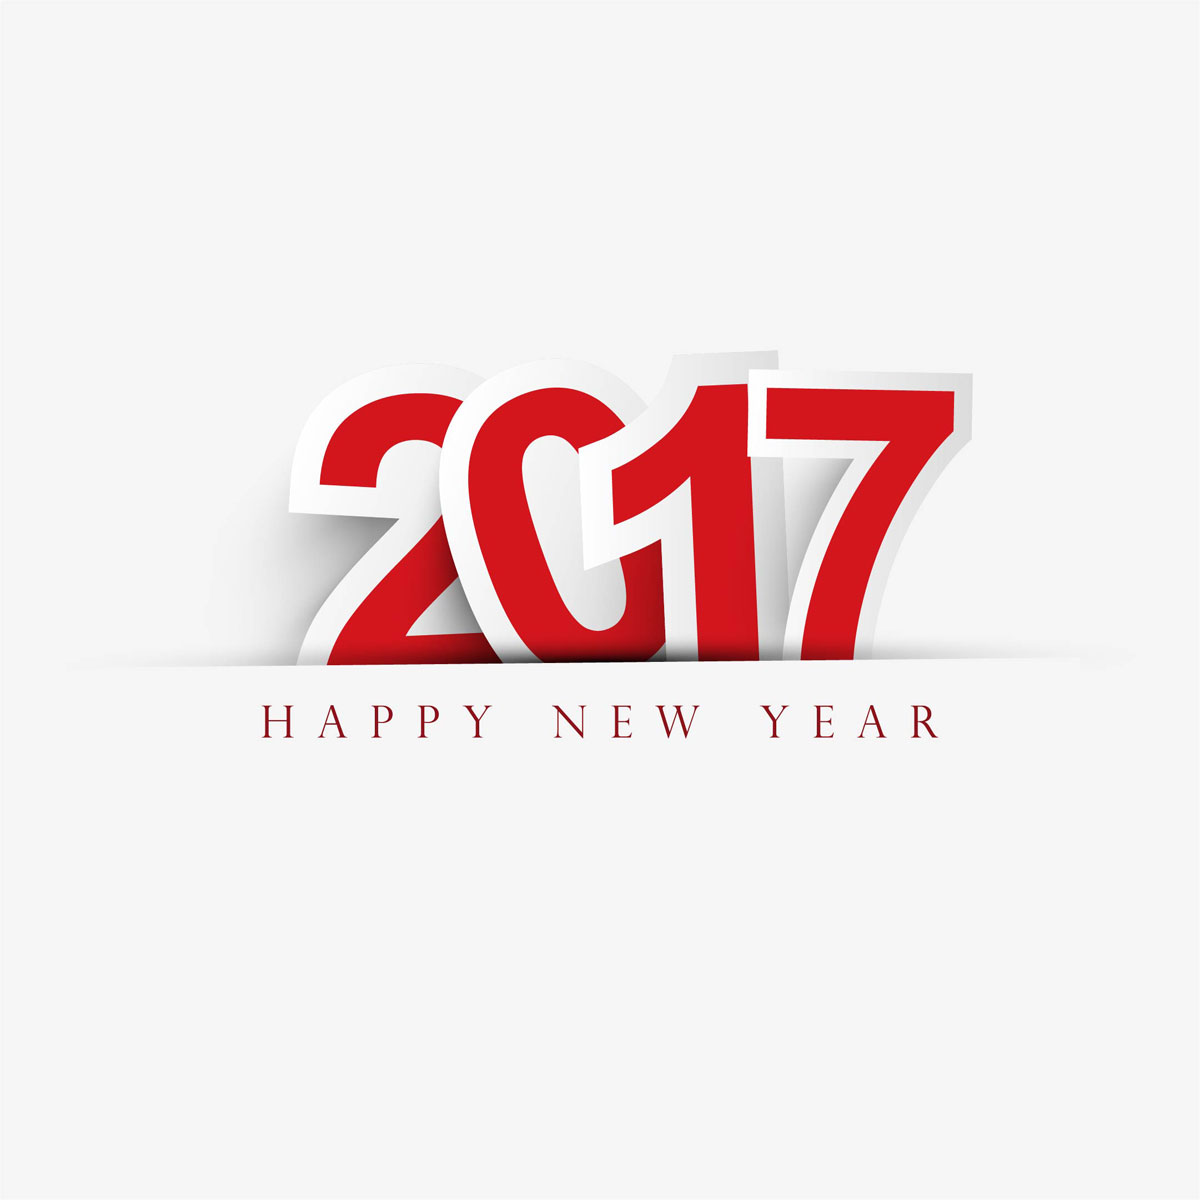 Happy New Year 2017 HD Pictures